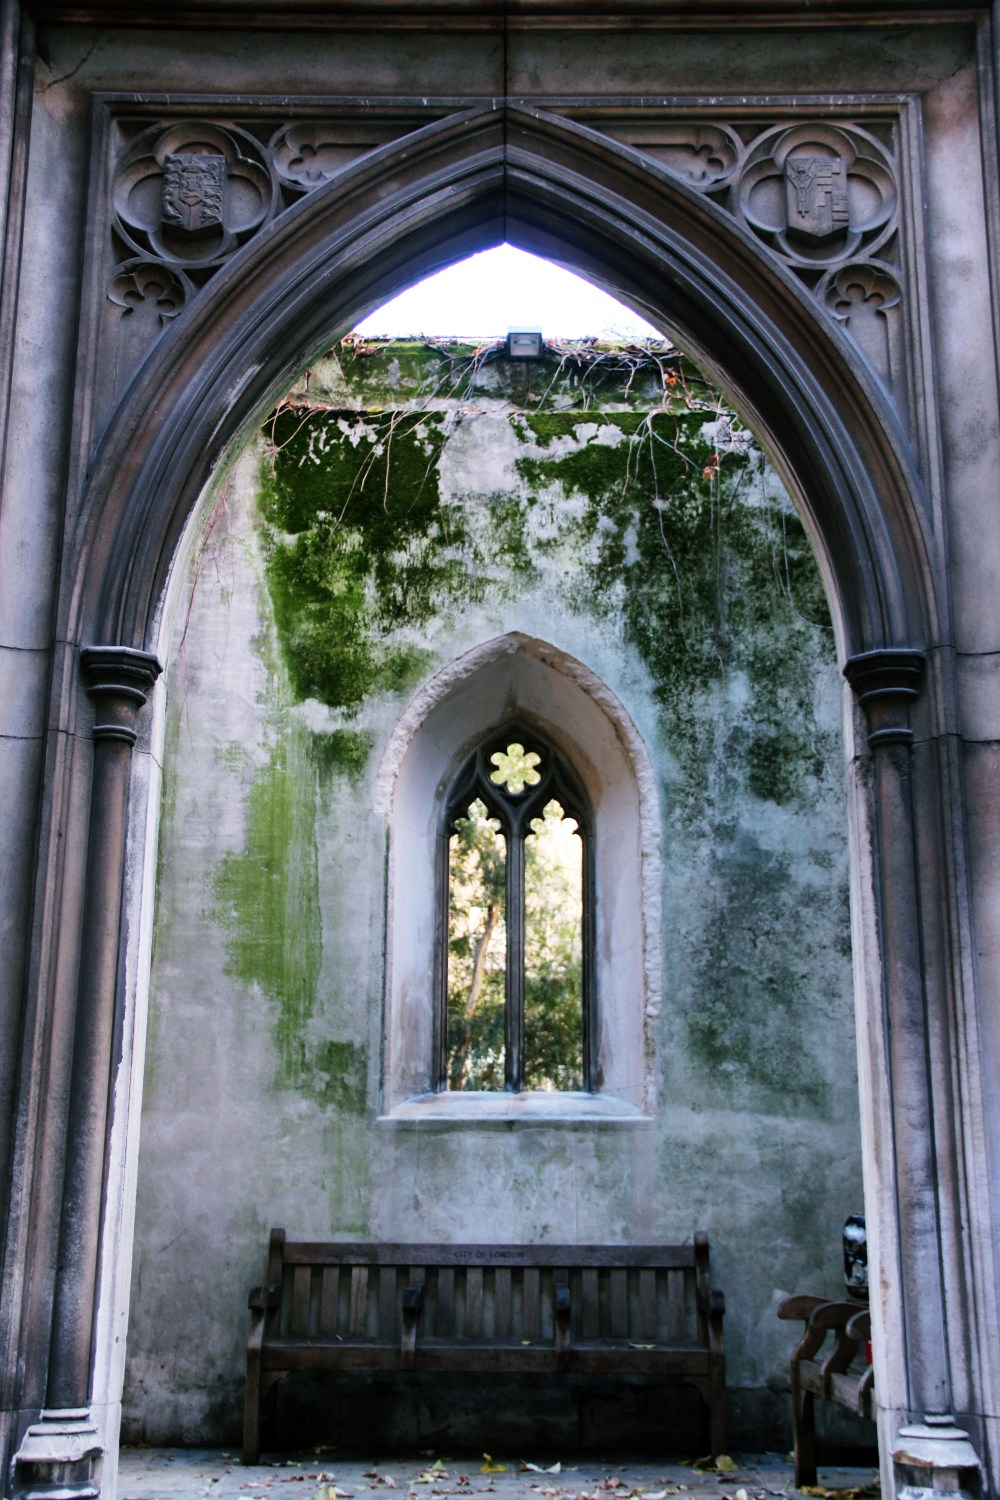 11 Dec 2016: St Dunstan in the East | London, England